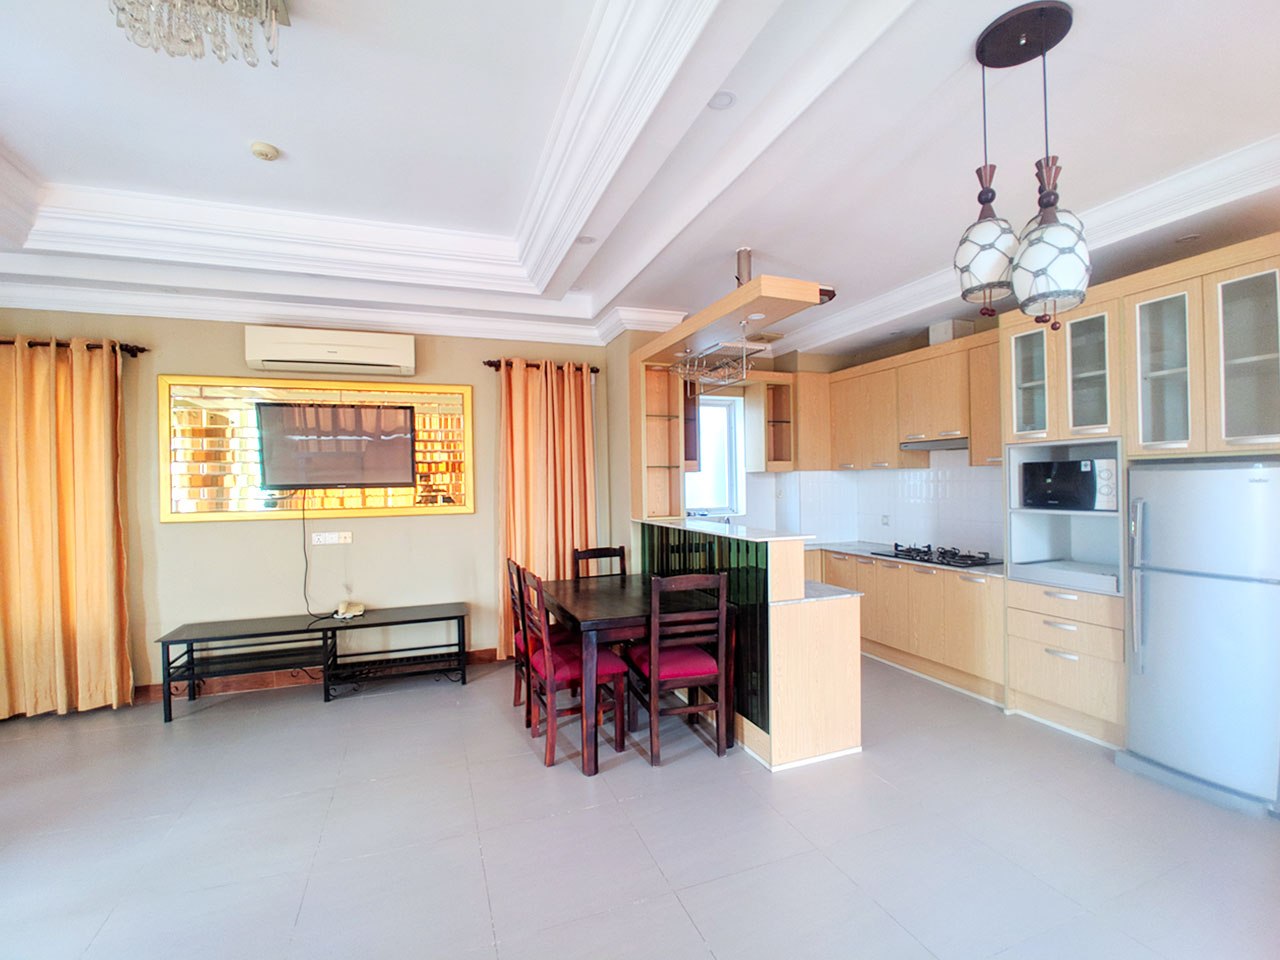 1 Bedroom Penthouse for Rent @ Tuol Tumpoung 2 Area